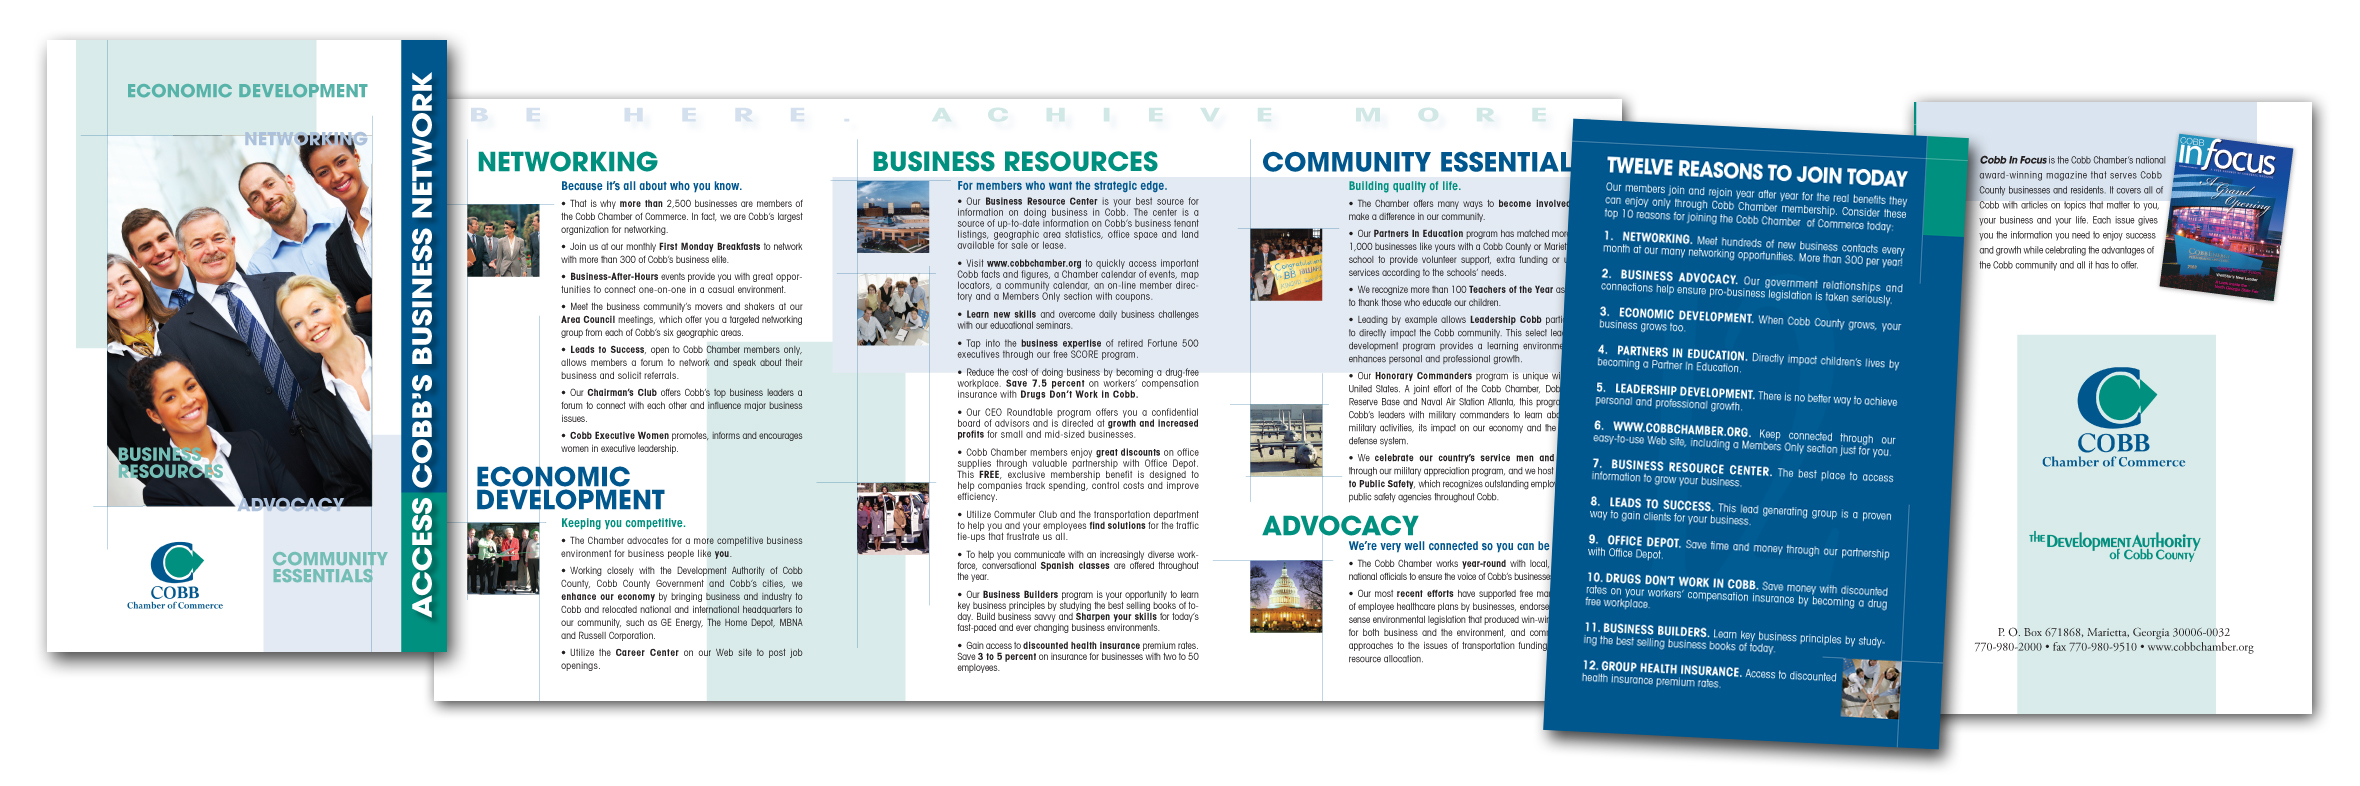 ACCESS COBB Brochure